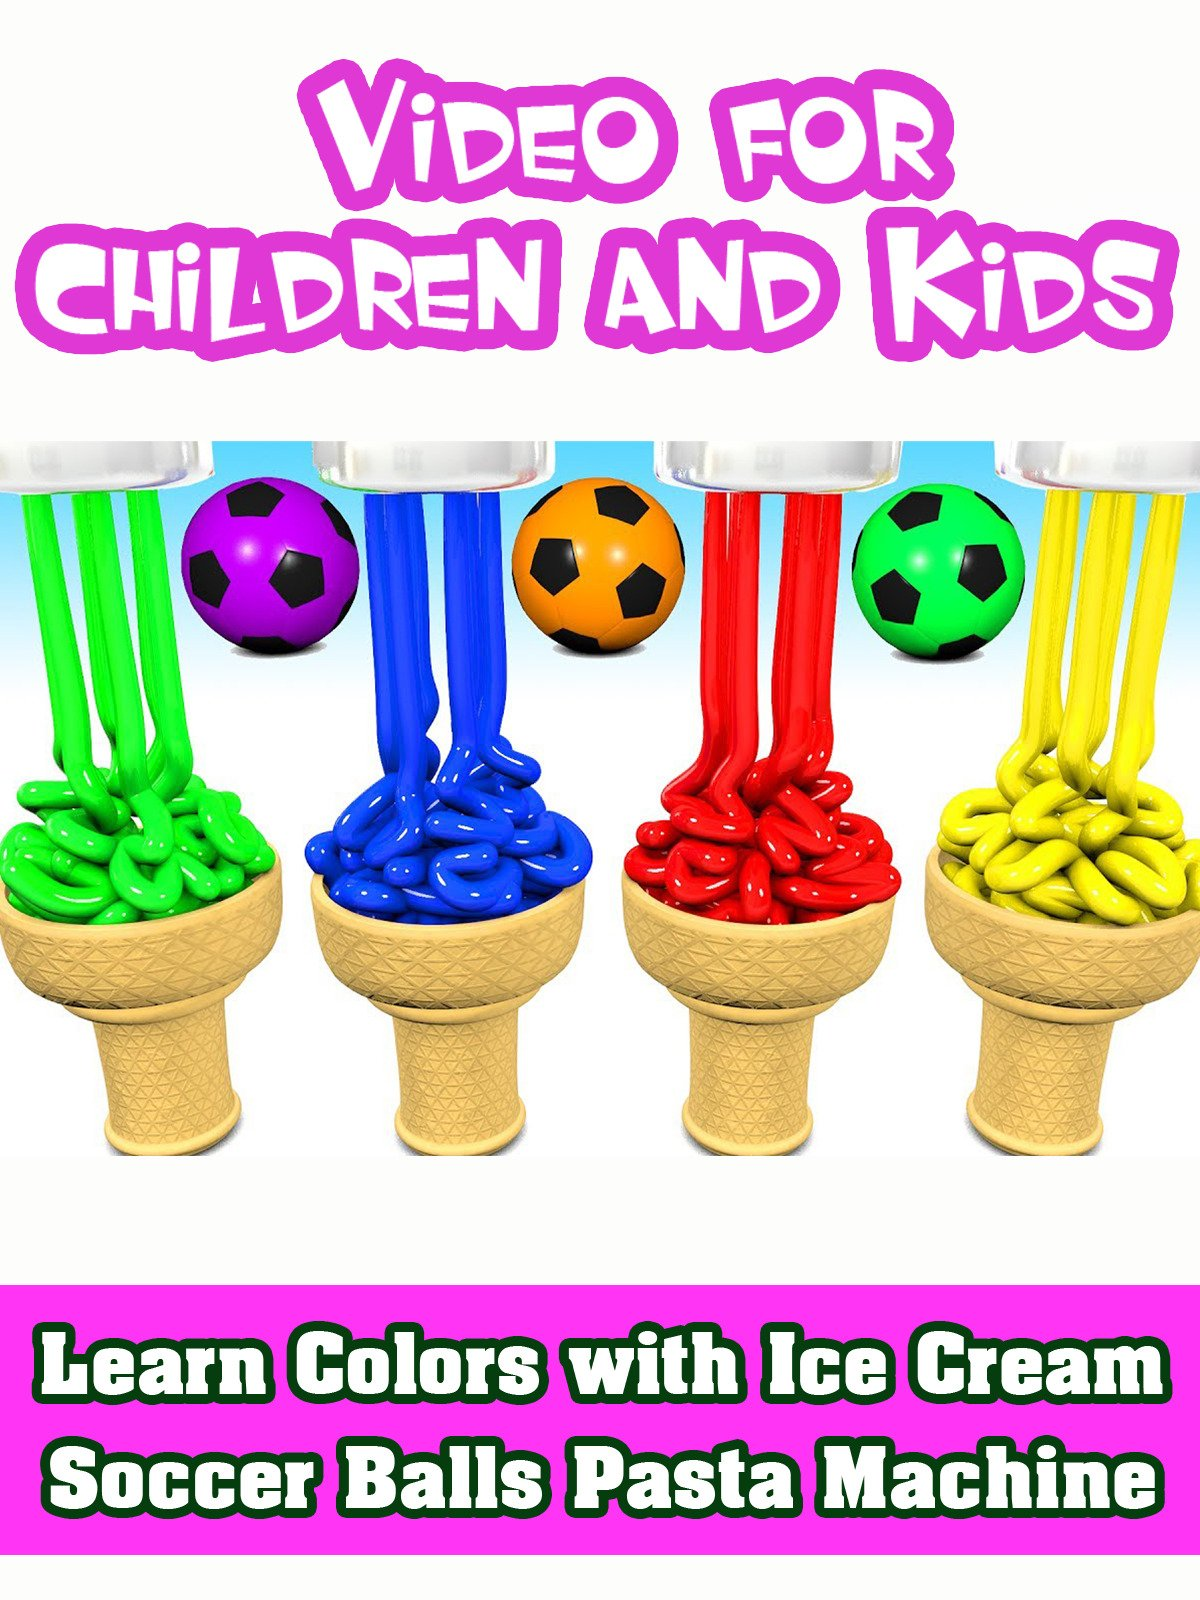 Learn Colors with Ice Cream Soccer Balls Pasta Machine